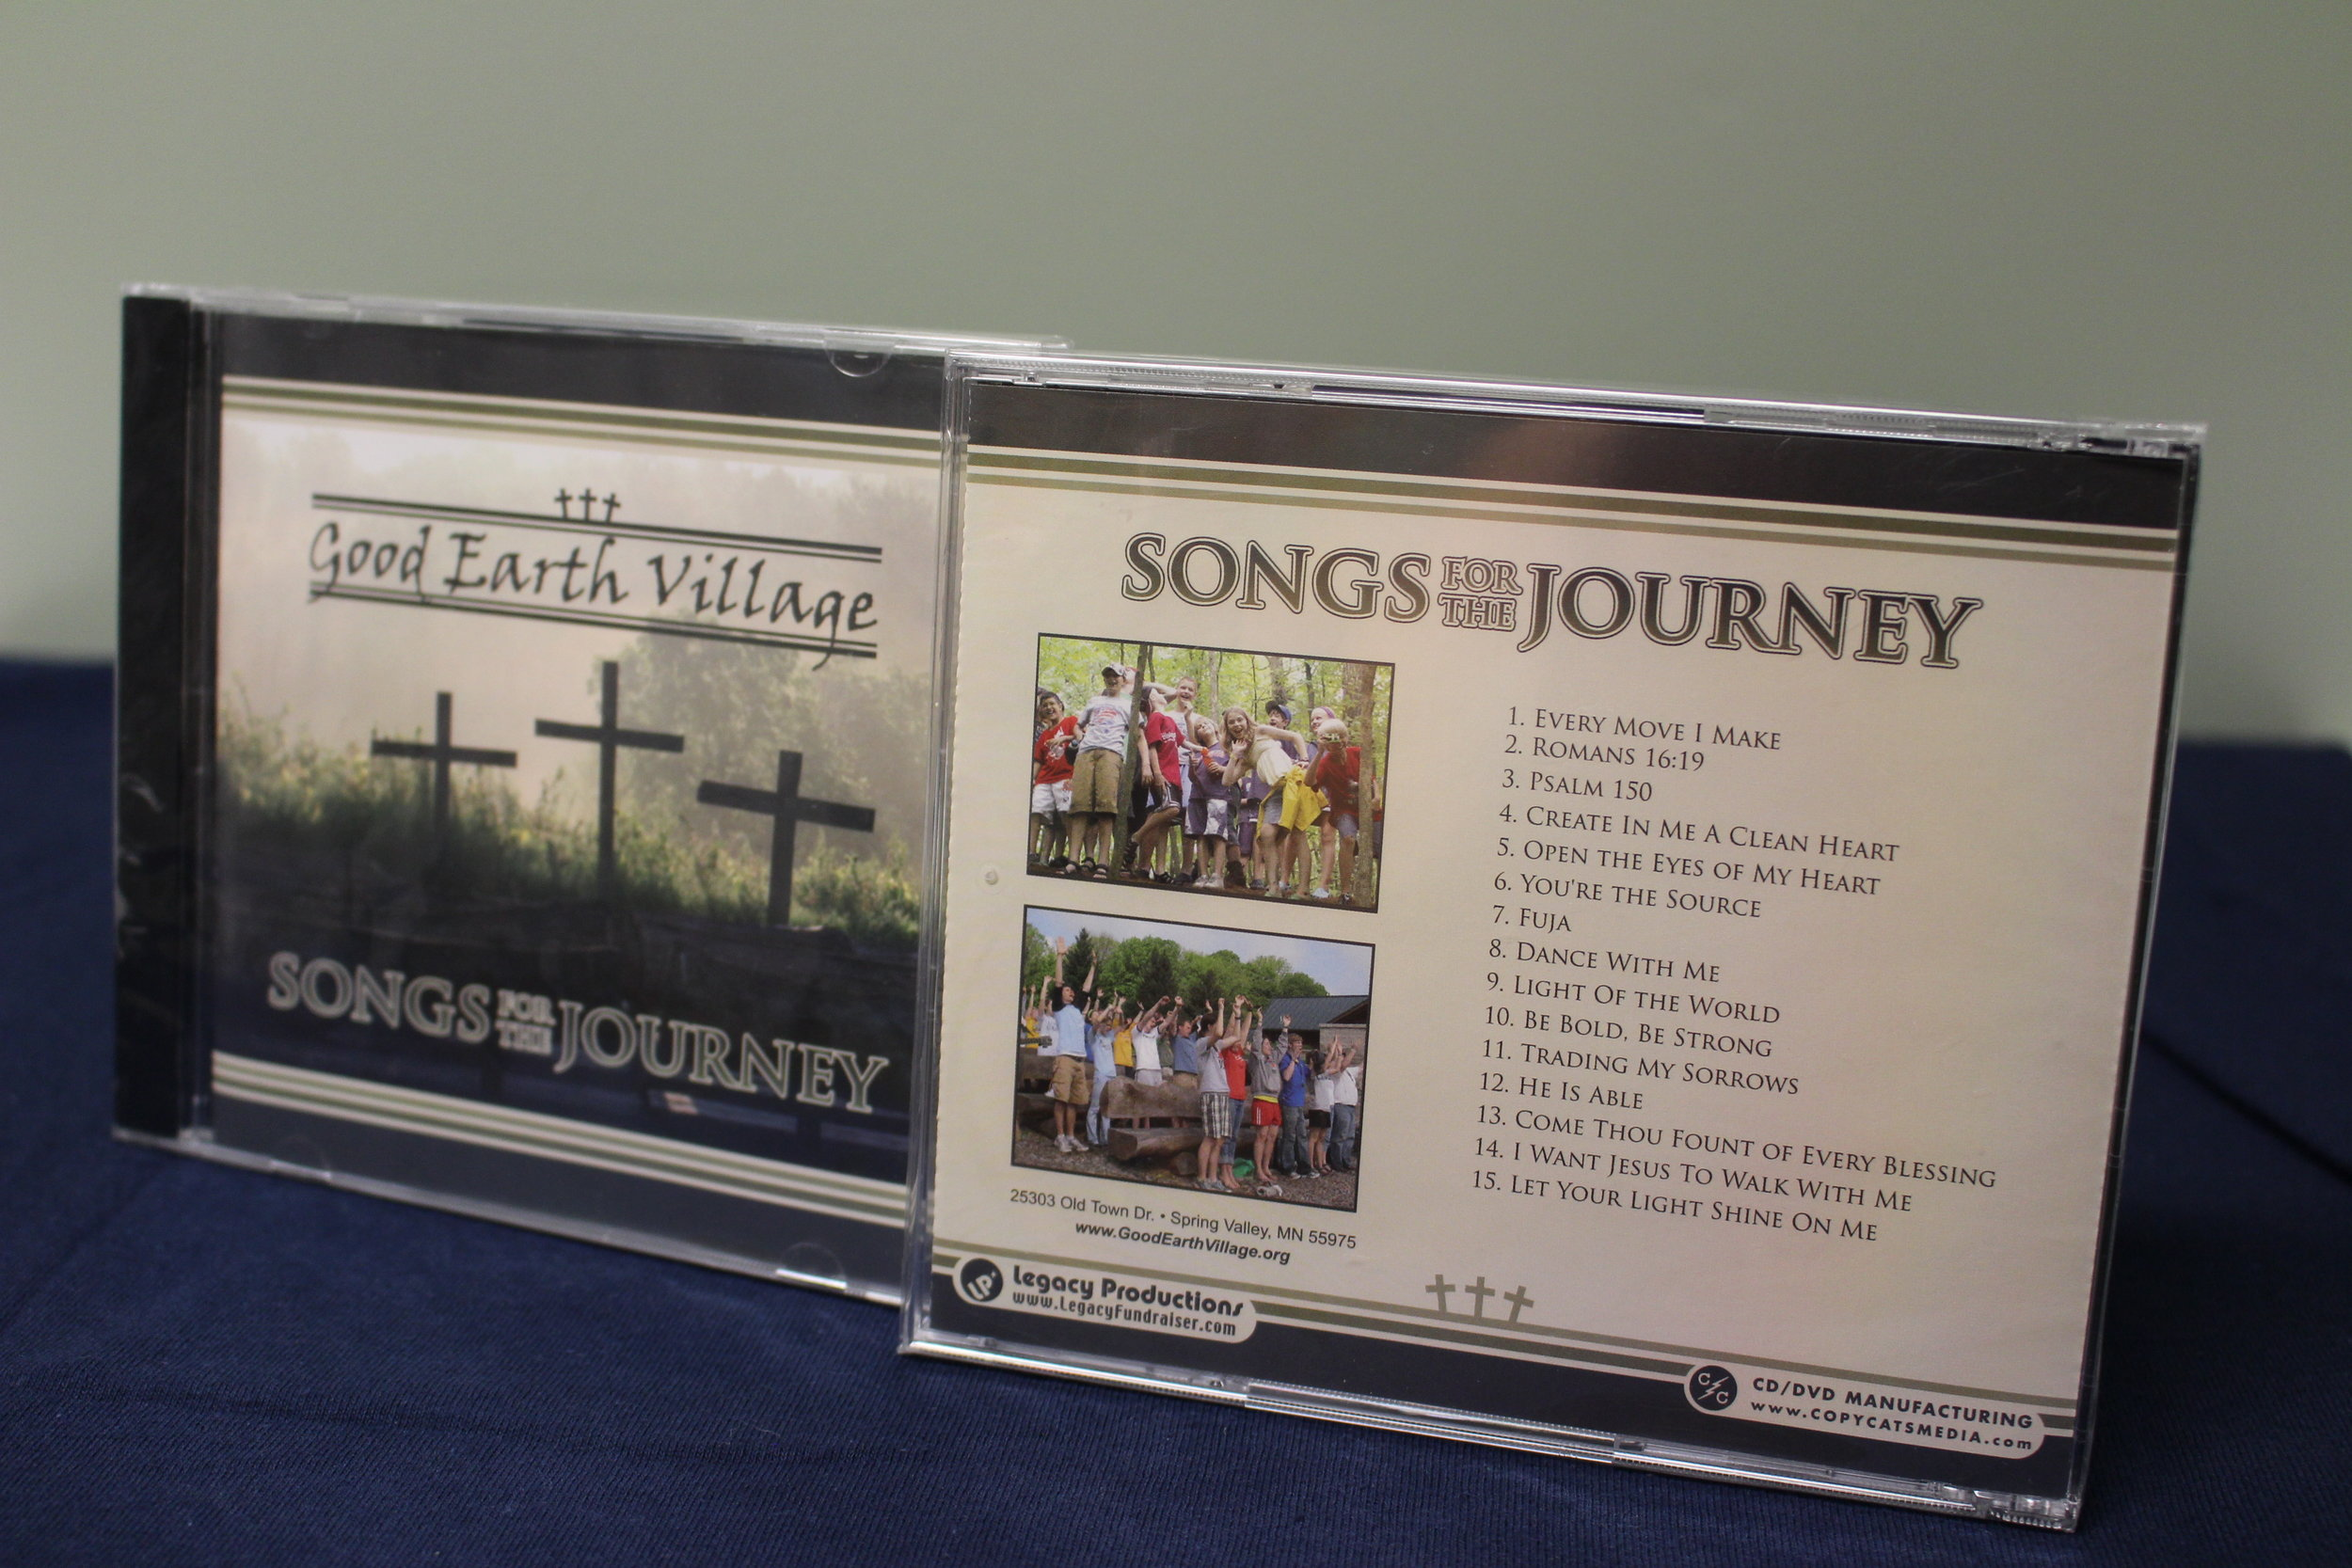 Item:  Songs for the Journey CD, Recorded 2008  Songs Include:  Romans 16:19, Fuja, Every Move I Make, Light of the World, Psalm 150, Be Bold Be Brave plus many more!  Price:  $5